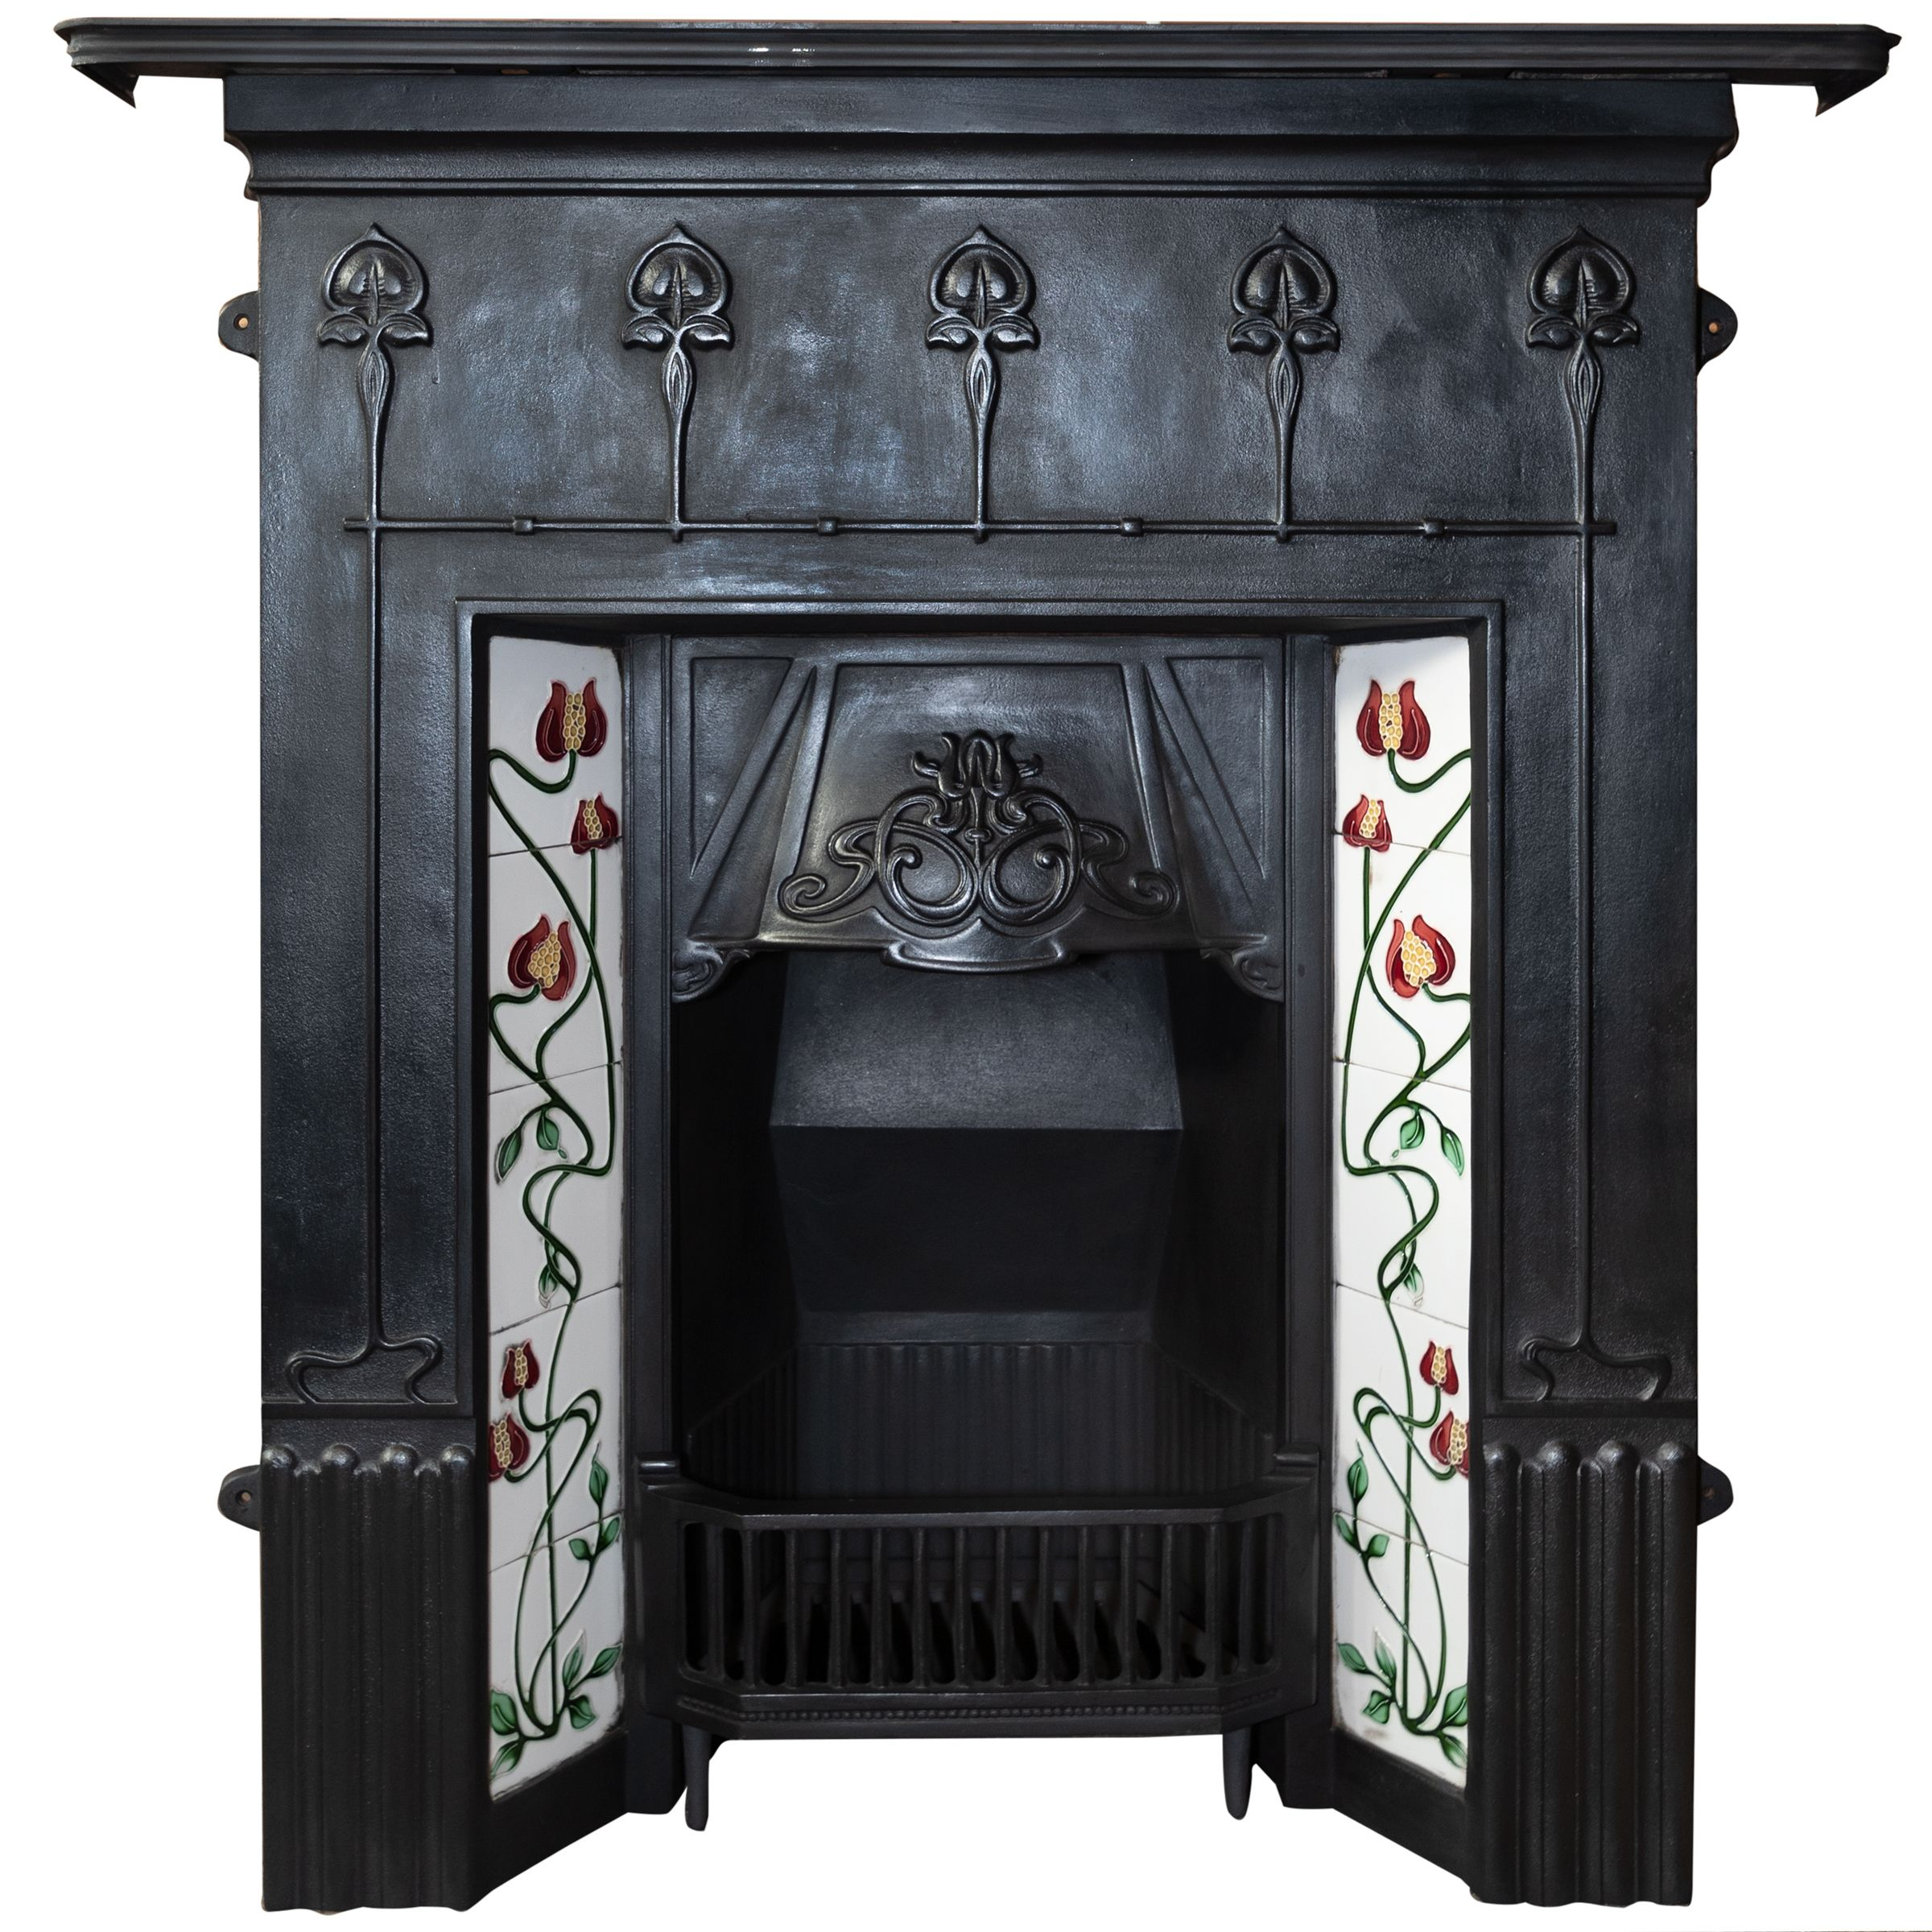 Victorian Fireplace Awesome Huge Selection Of Antique Cast Iron Fireplaces Fully